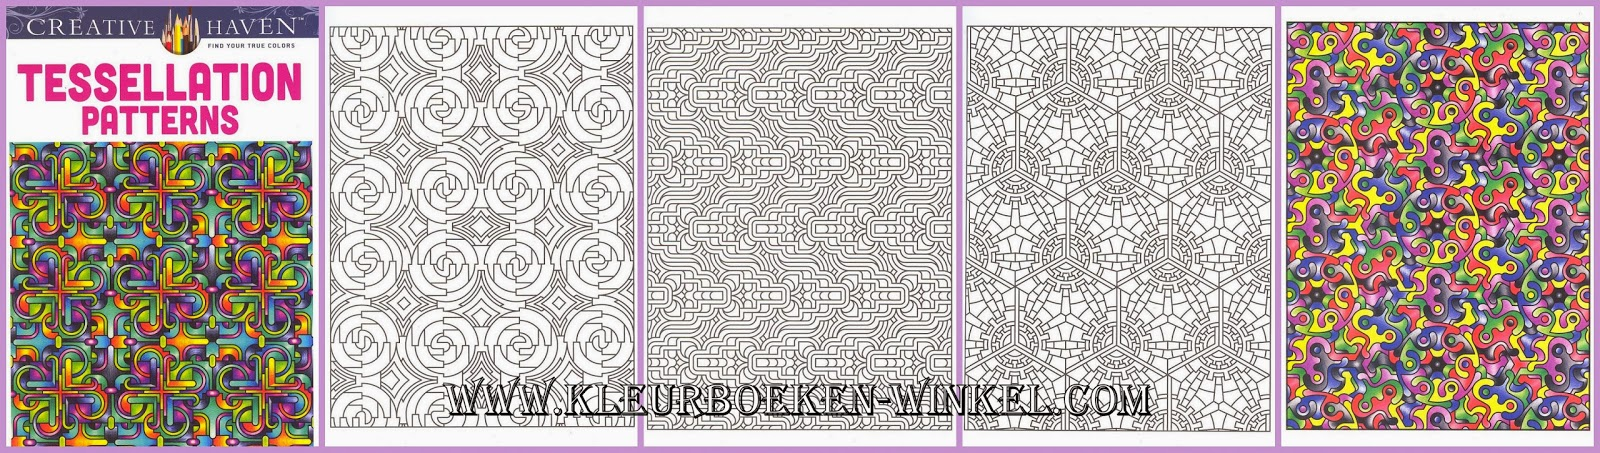 tessellation patterns, kleurboek geometrische patronen